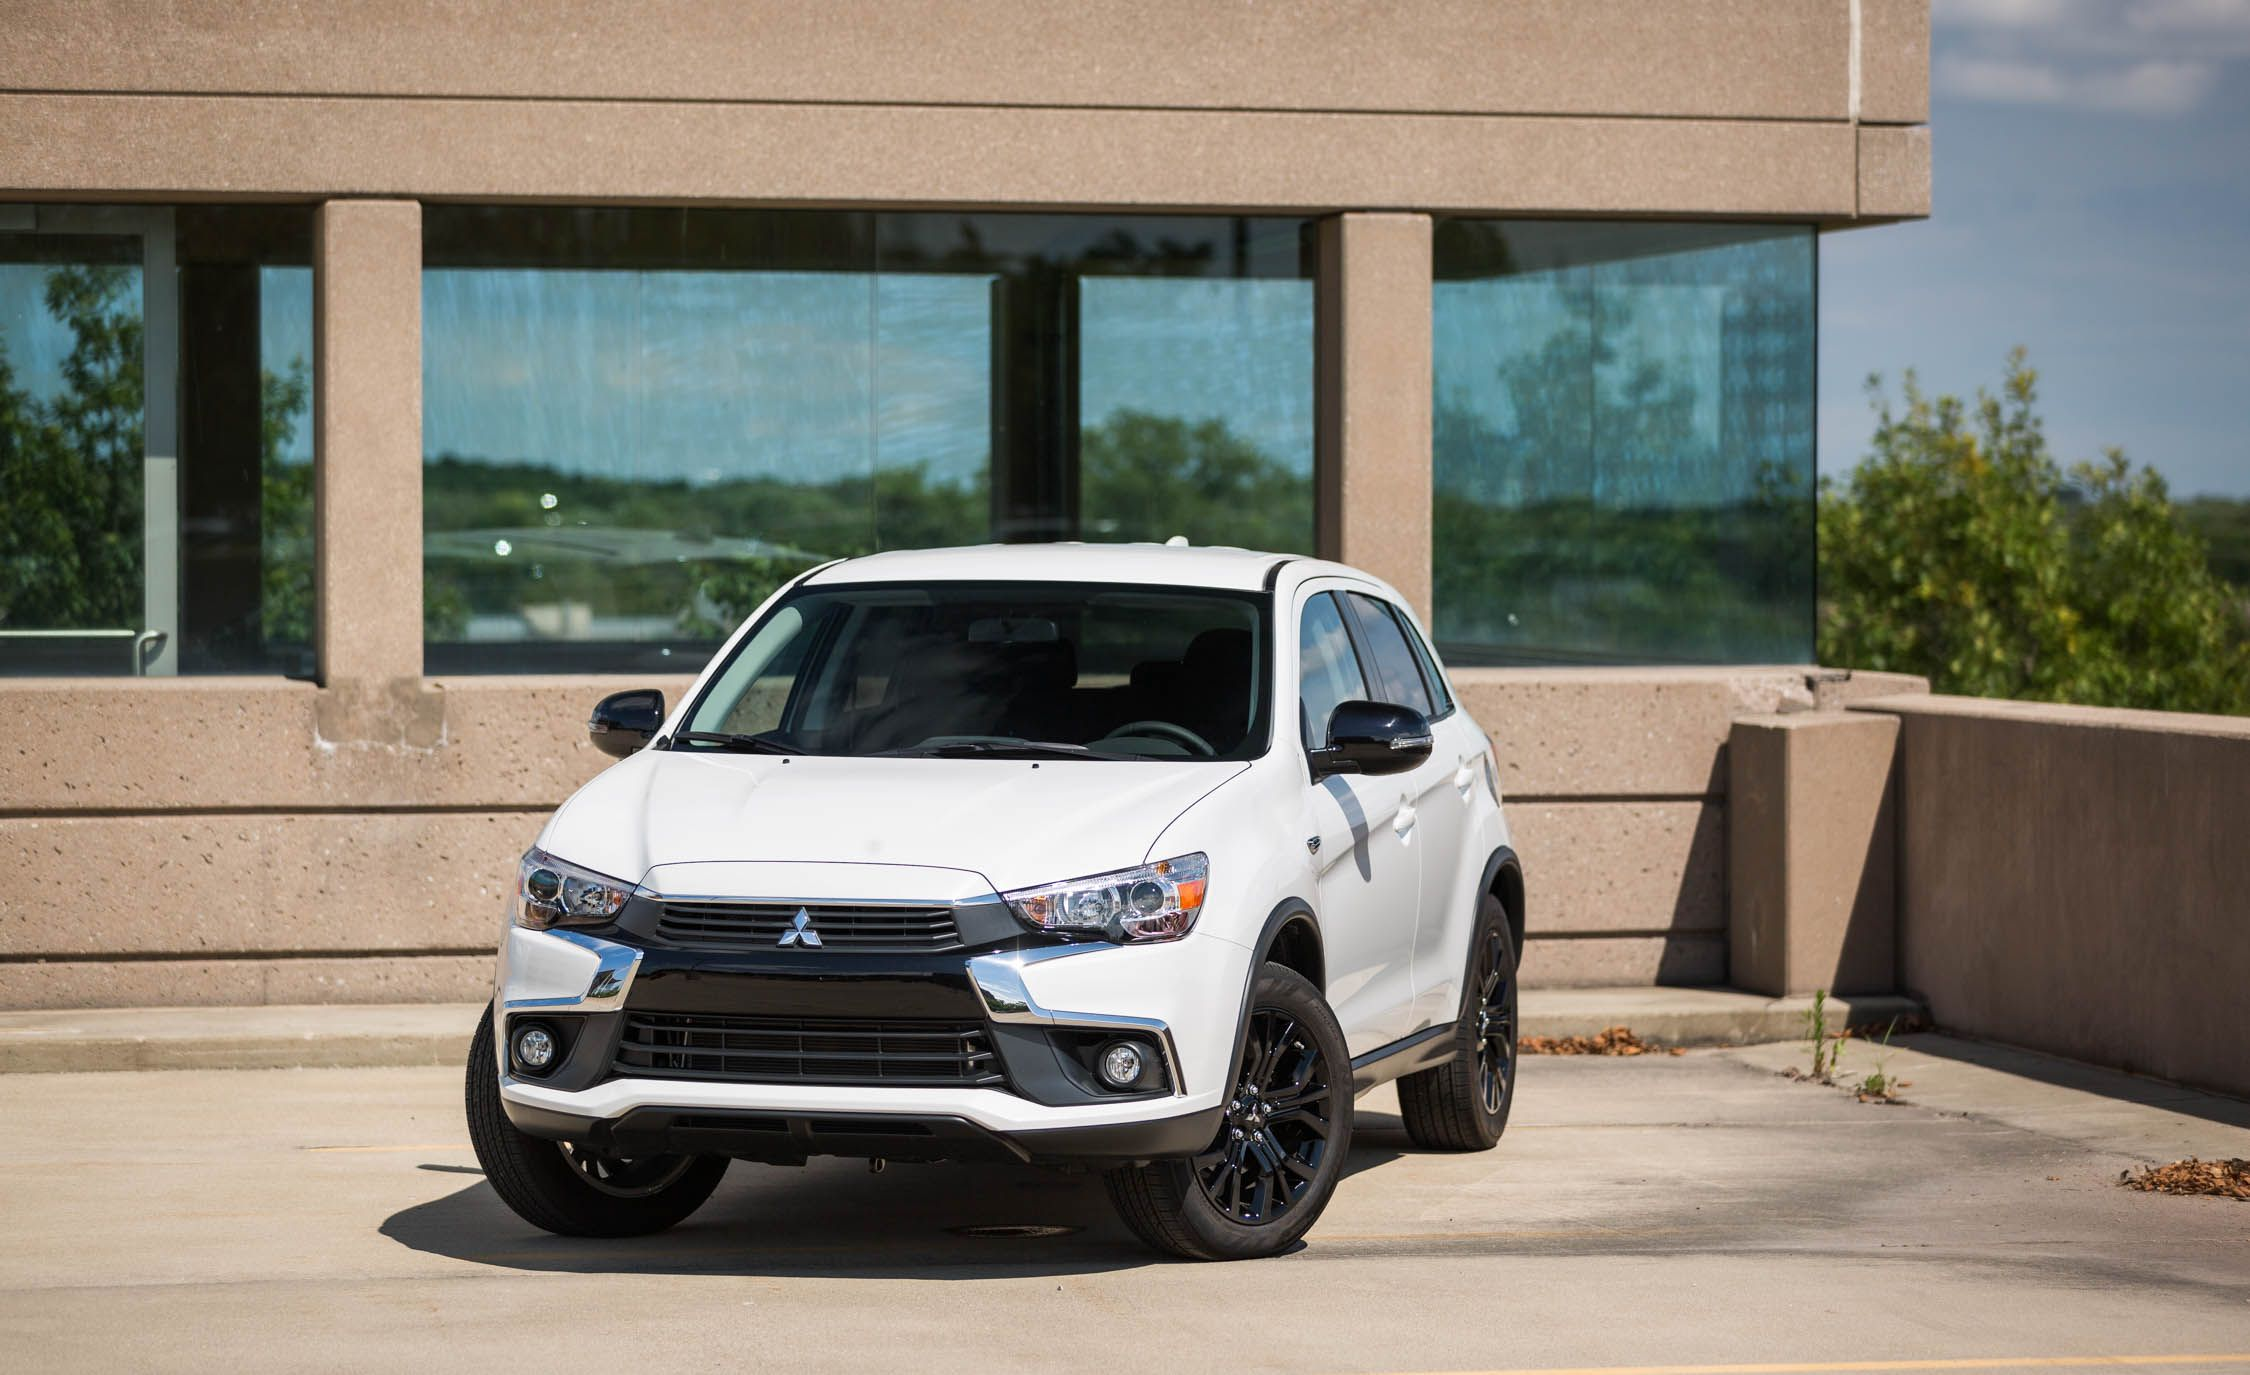 2017 Mitsubishi Outlander Sport | MMCS Infotainment Review | Car and Driver